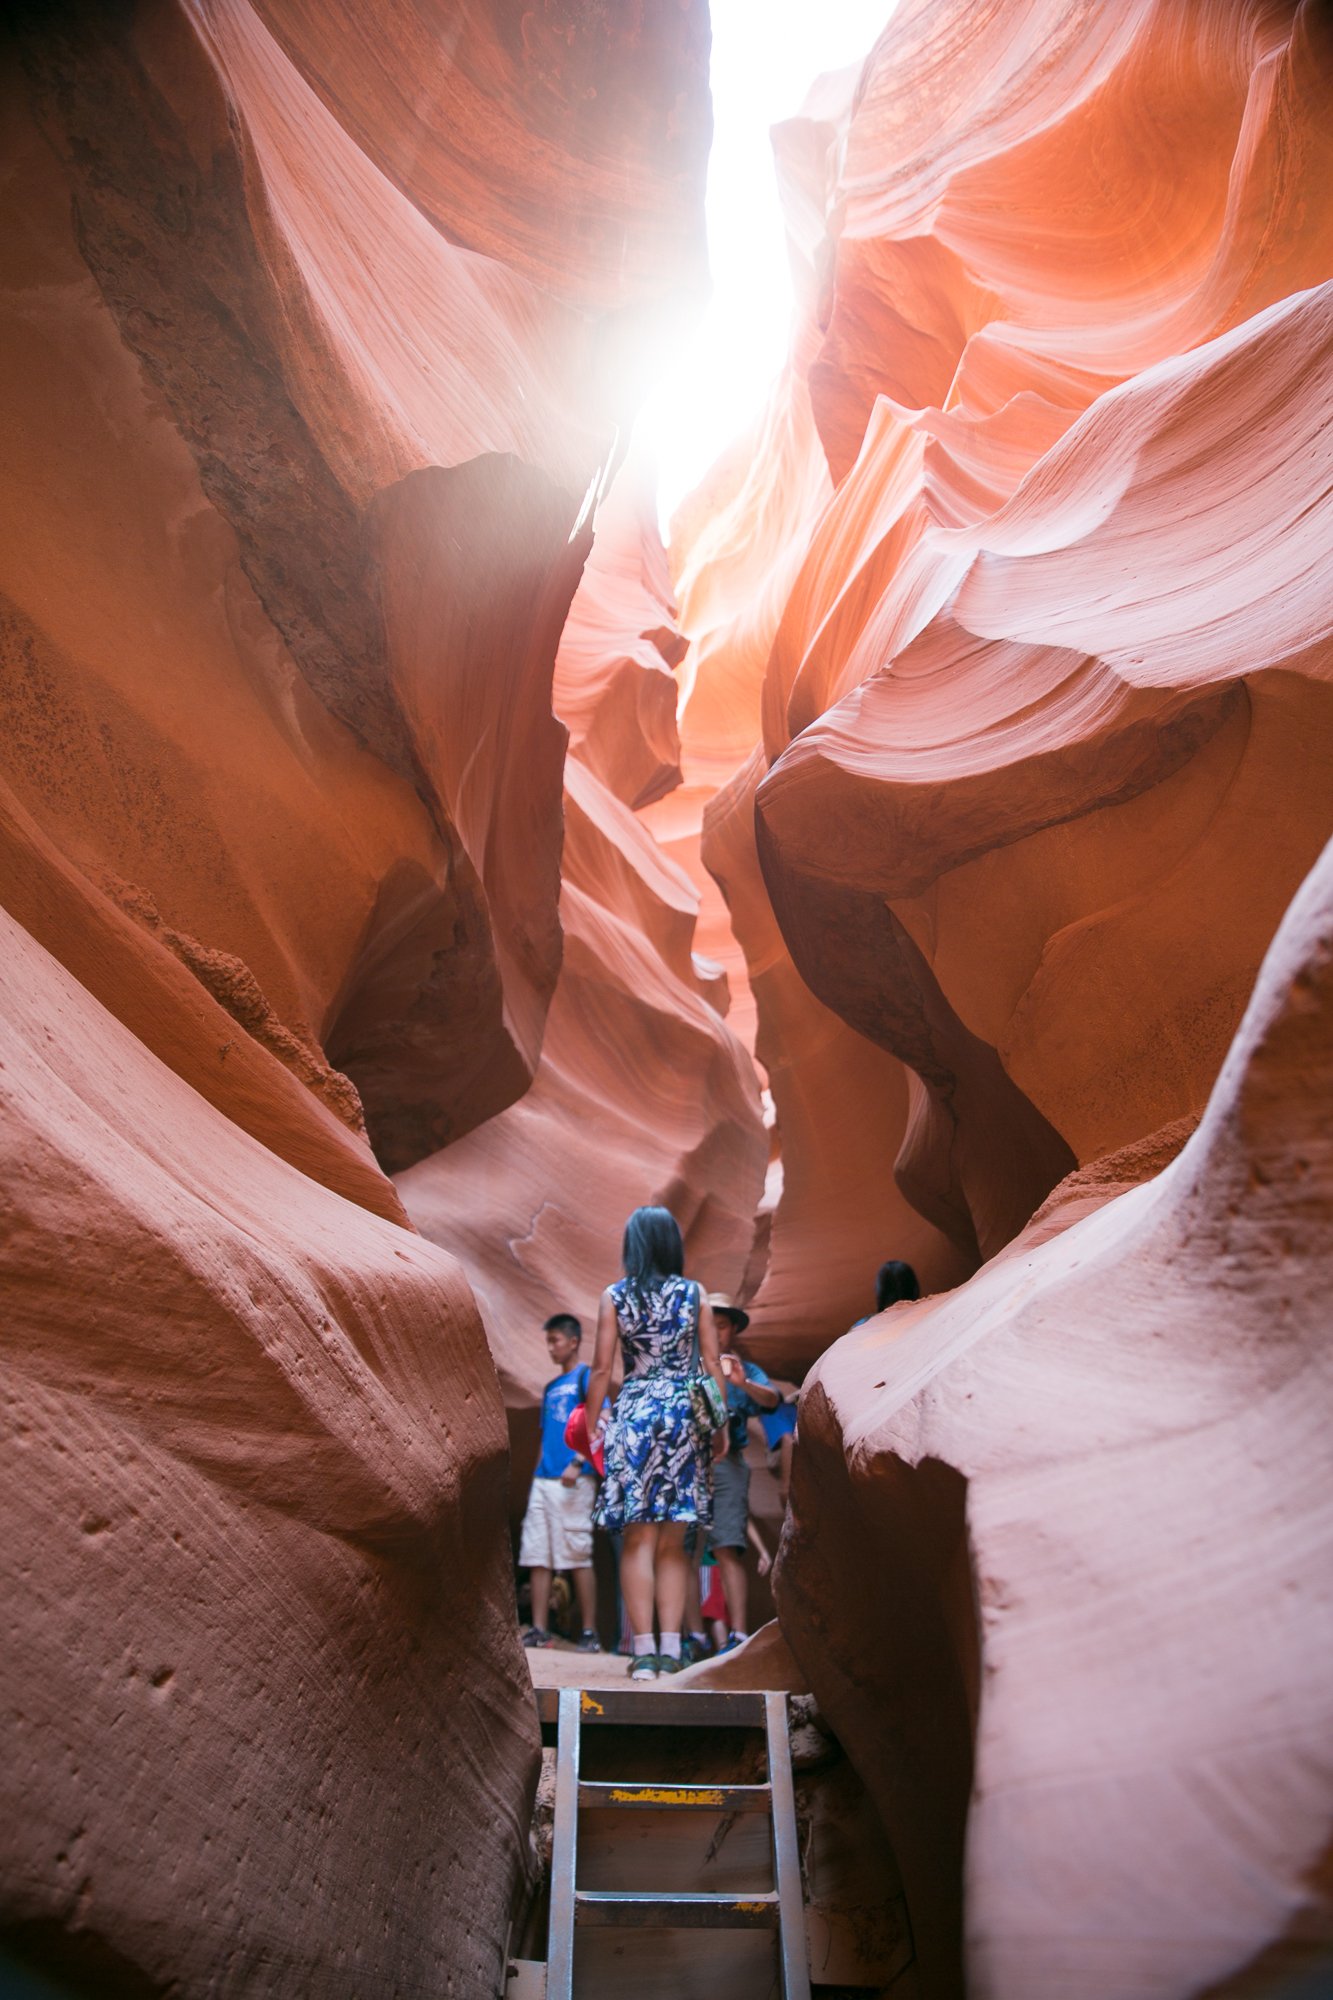 Free download high resolution image - free image free photo free stock image public domain picture -Upper Antelope Canyon, Navajo Nation